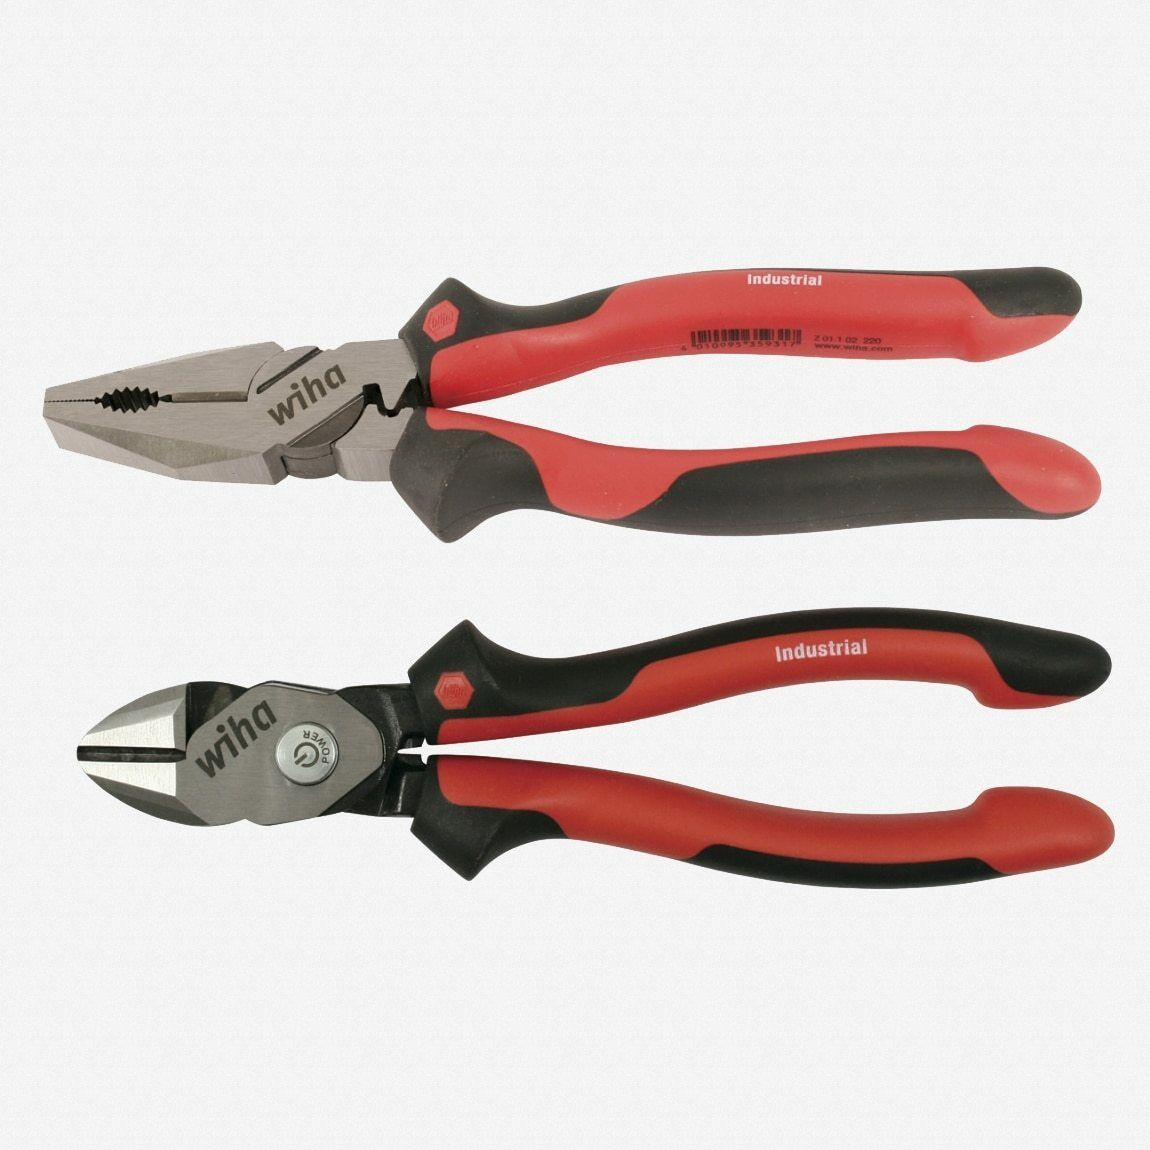 Wiha 30941 Industrial Soft Grip Pliers 2 for 1 Lineman's + BiCut